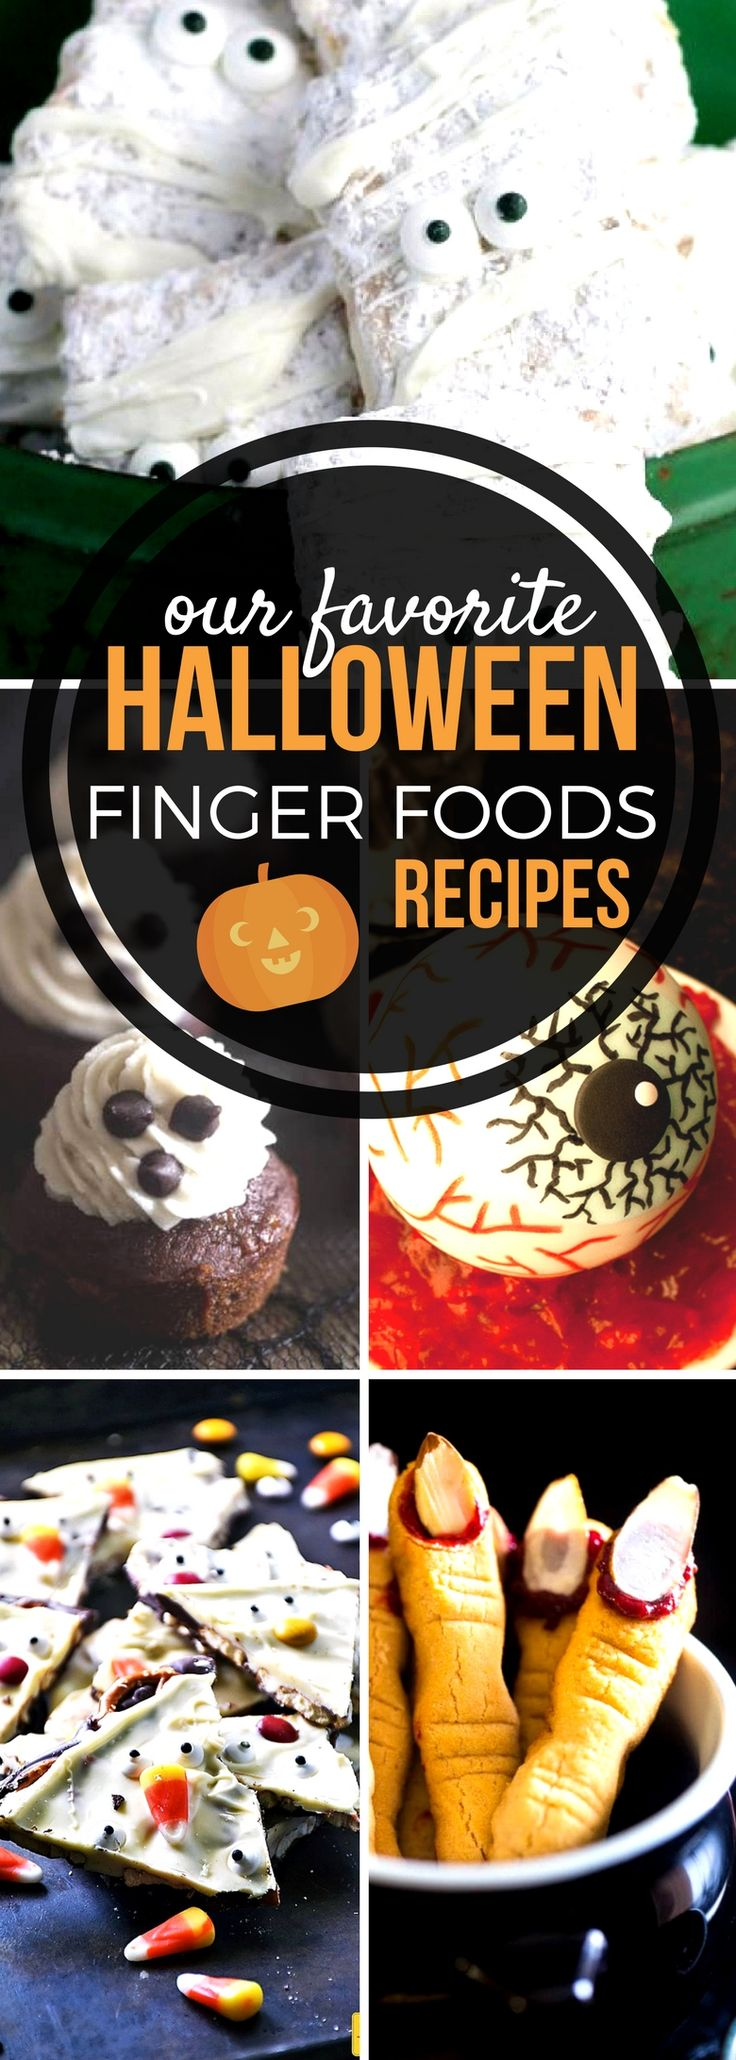 Celebrate Halloween with spectacularly spooky Halloween finger foods! Whether you're throwing a scream of a party or enjoying the holiday alone or with your family, these creepy, clever, and fun Sunday Supper recipes are sure to put you and anyone who eats them under their spell. #SundaySupper #HalloweenRecipes #FingerFoods